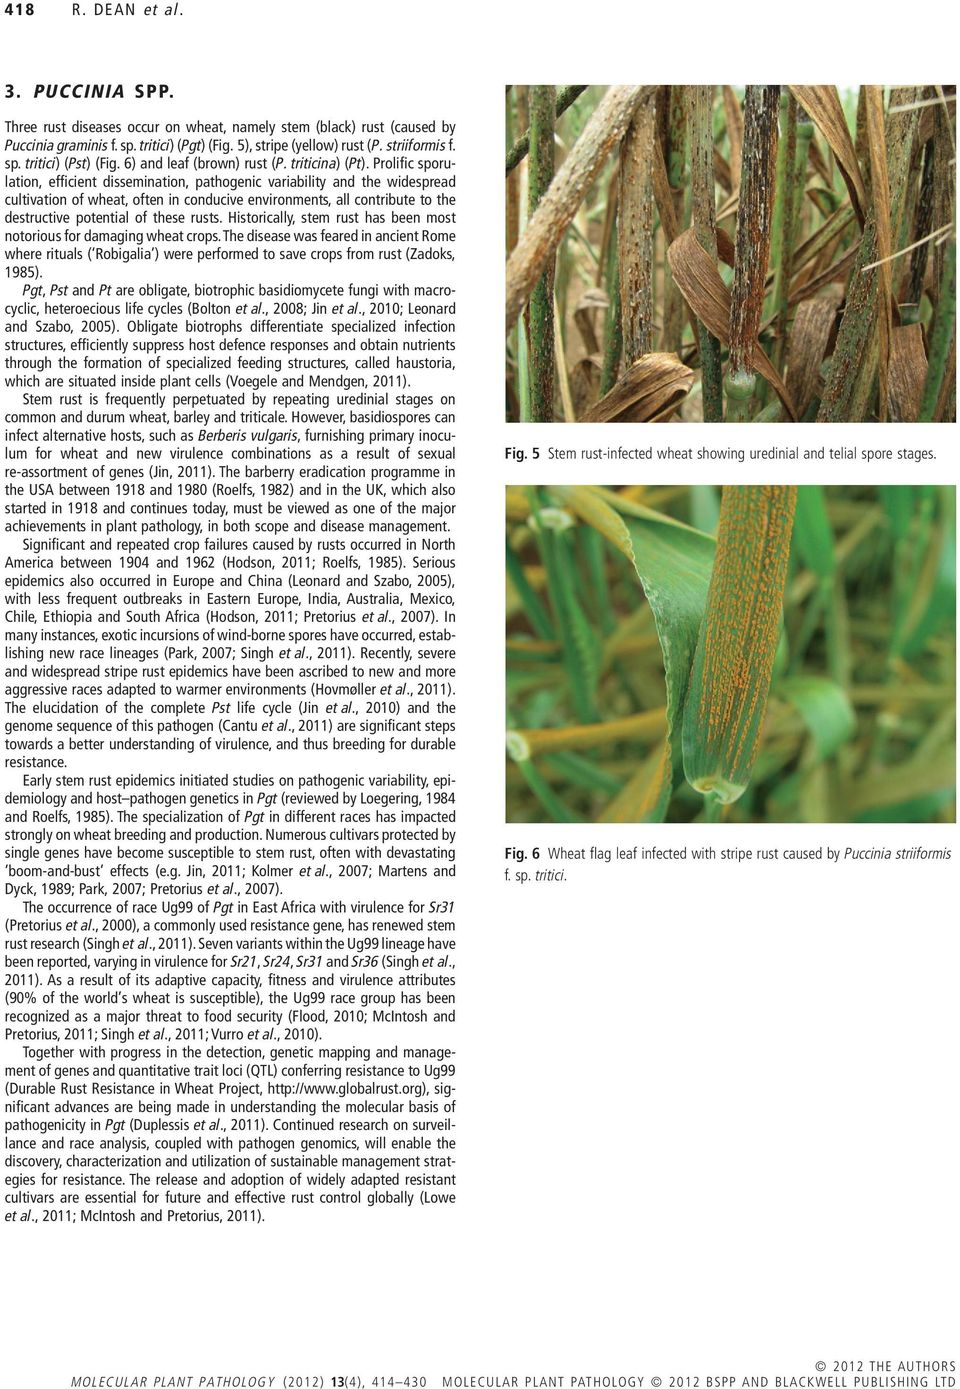 Prolific sporulation, efficient dissemination, pathogenic variability and the widespread cultivation of wheat, often in conducive environments, all contribute to the destructive potential of these